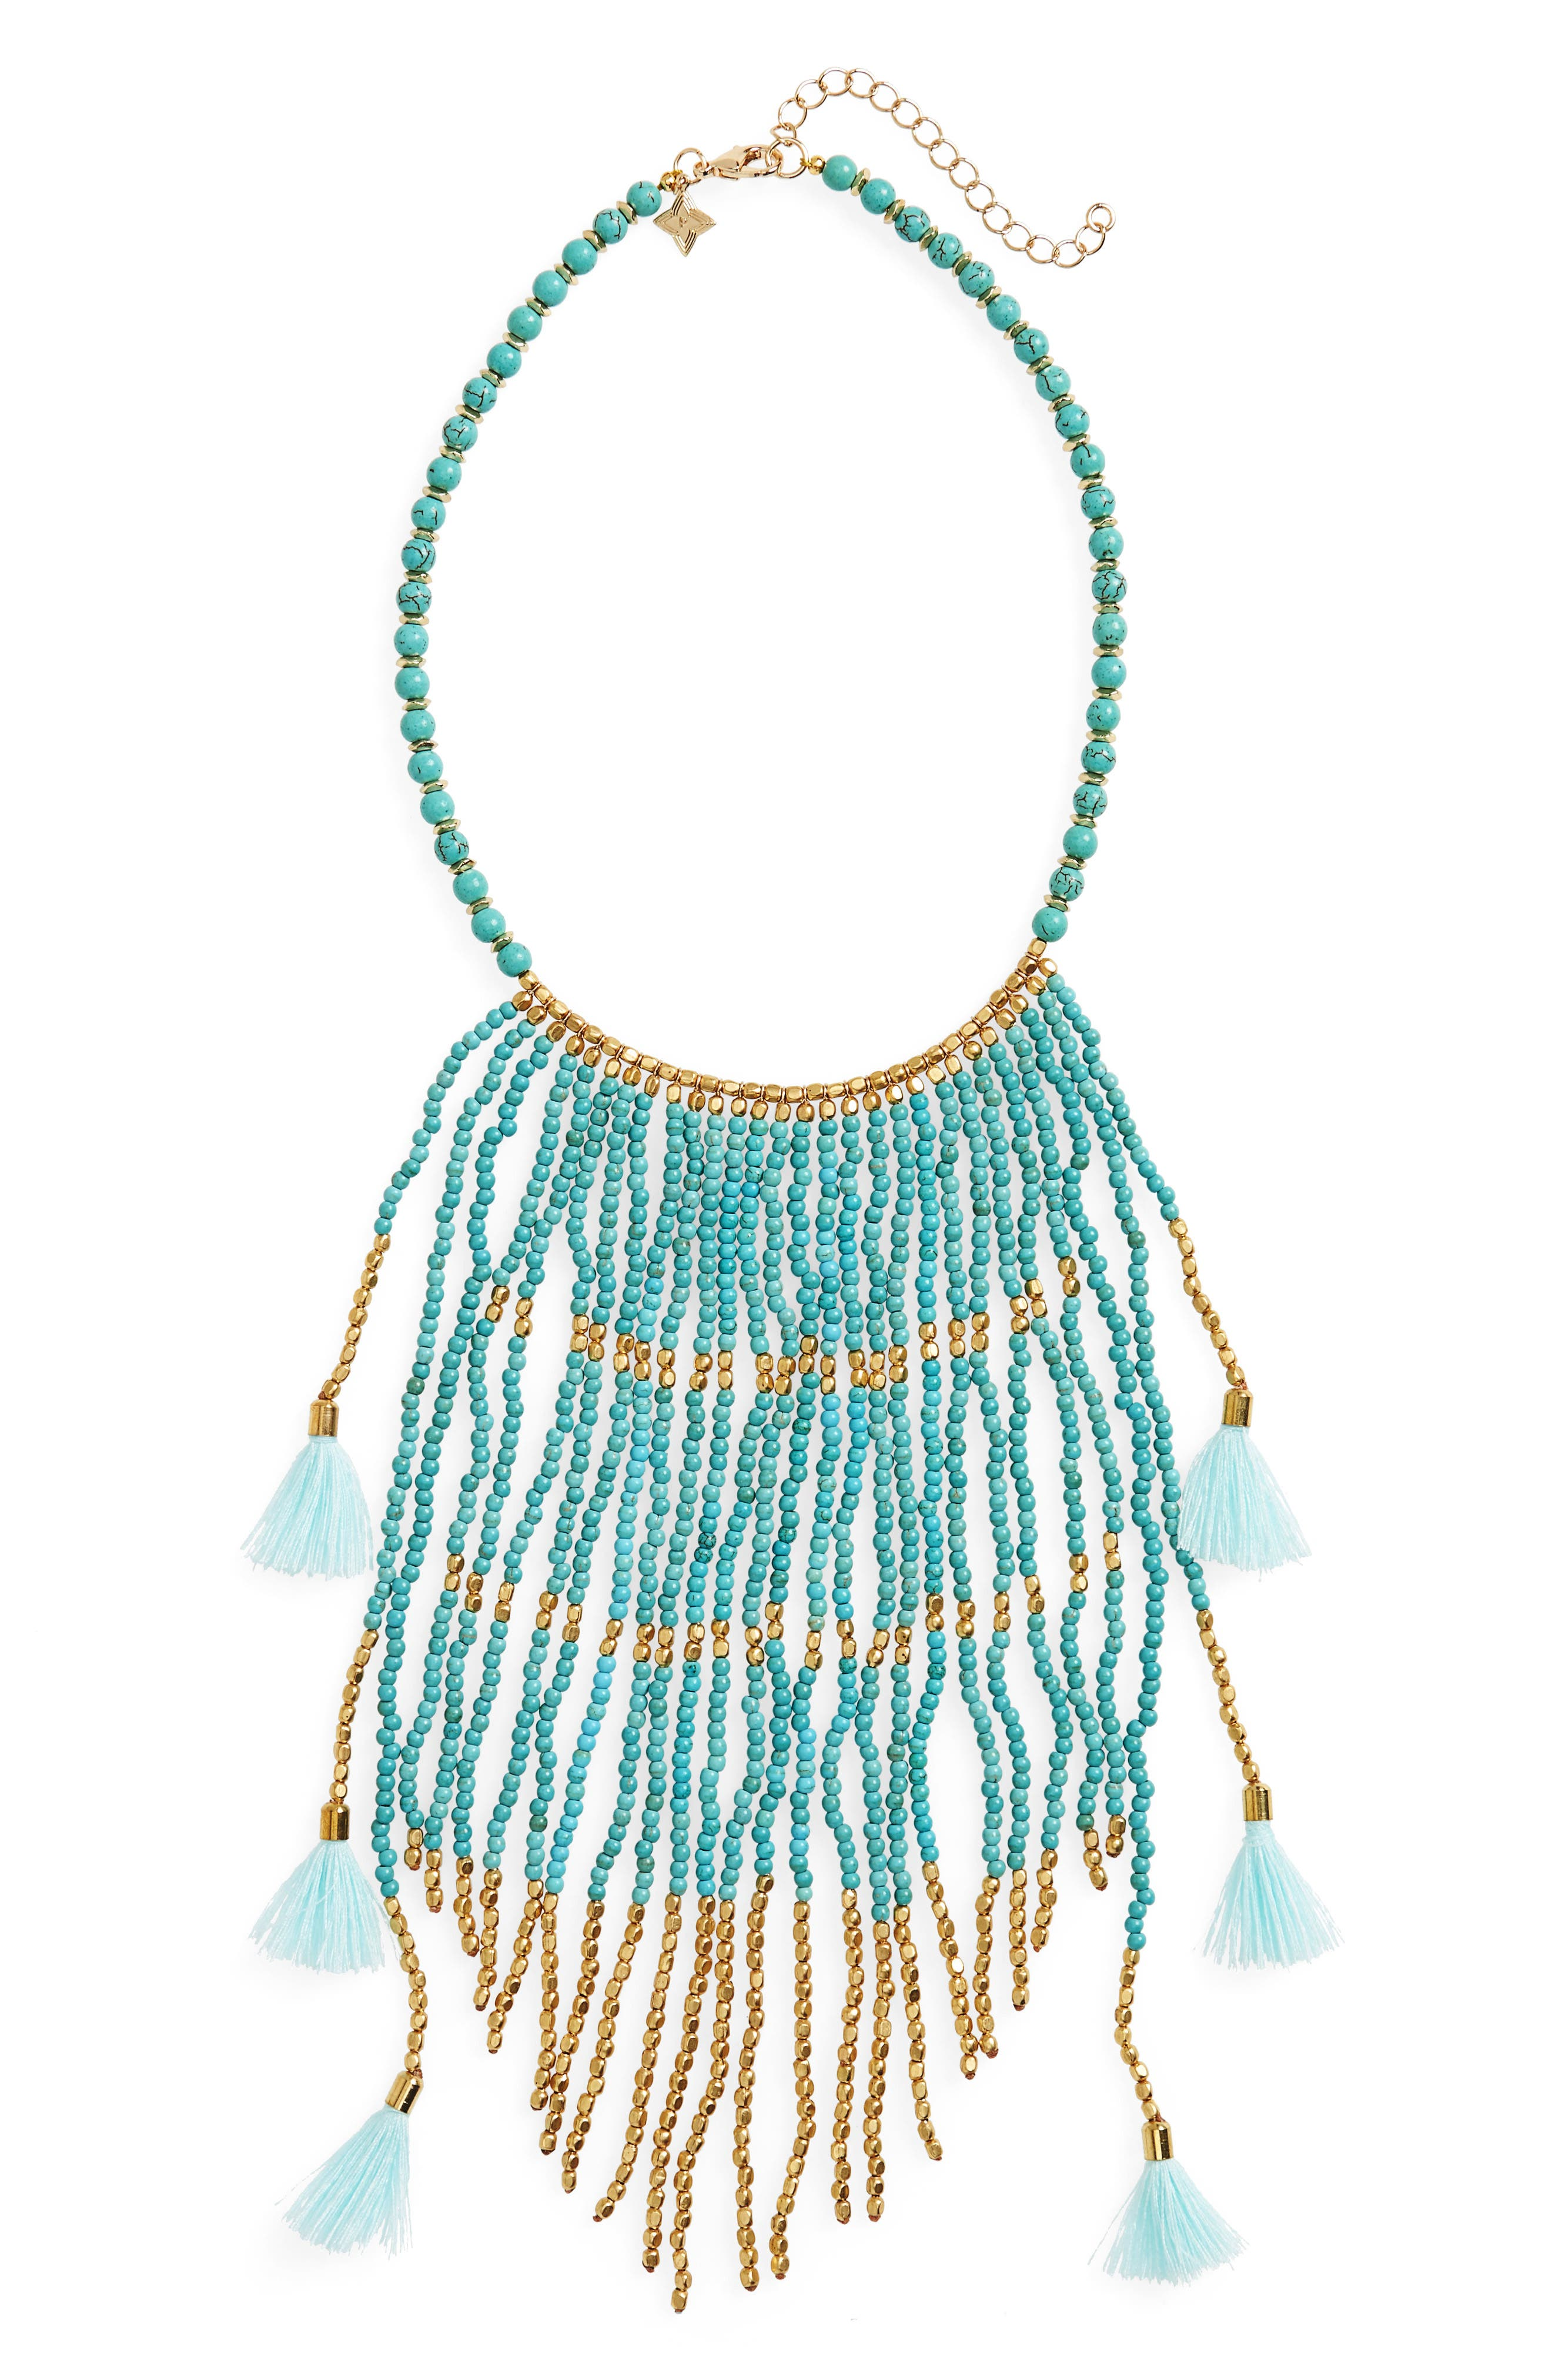 Beaded Fringe Statement Necklace,                             Main thumbnail 1, color,                             400